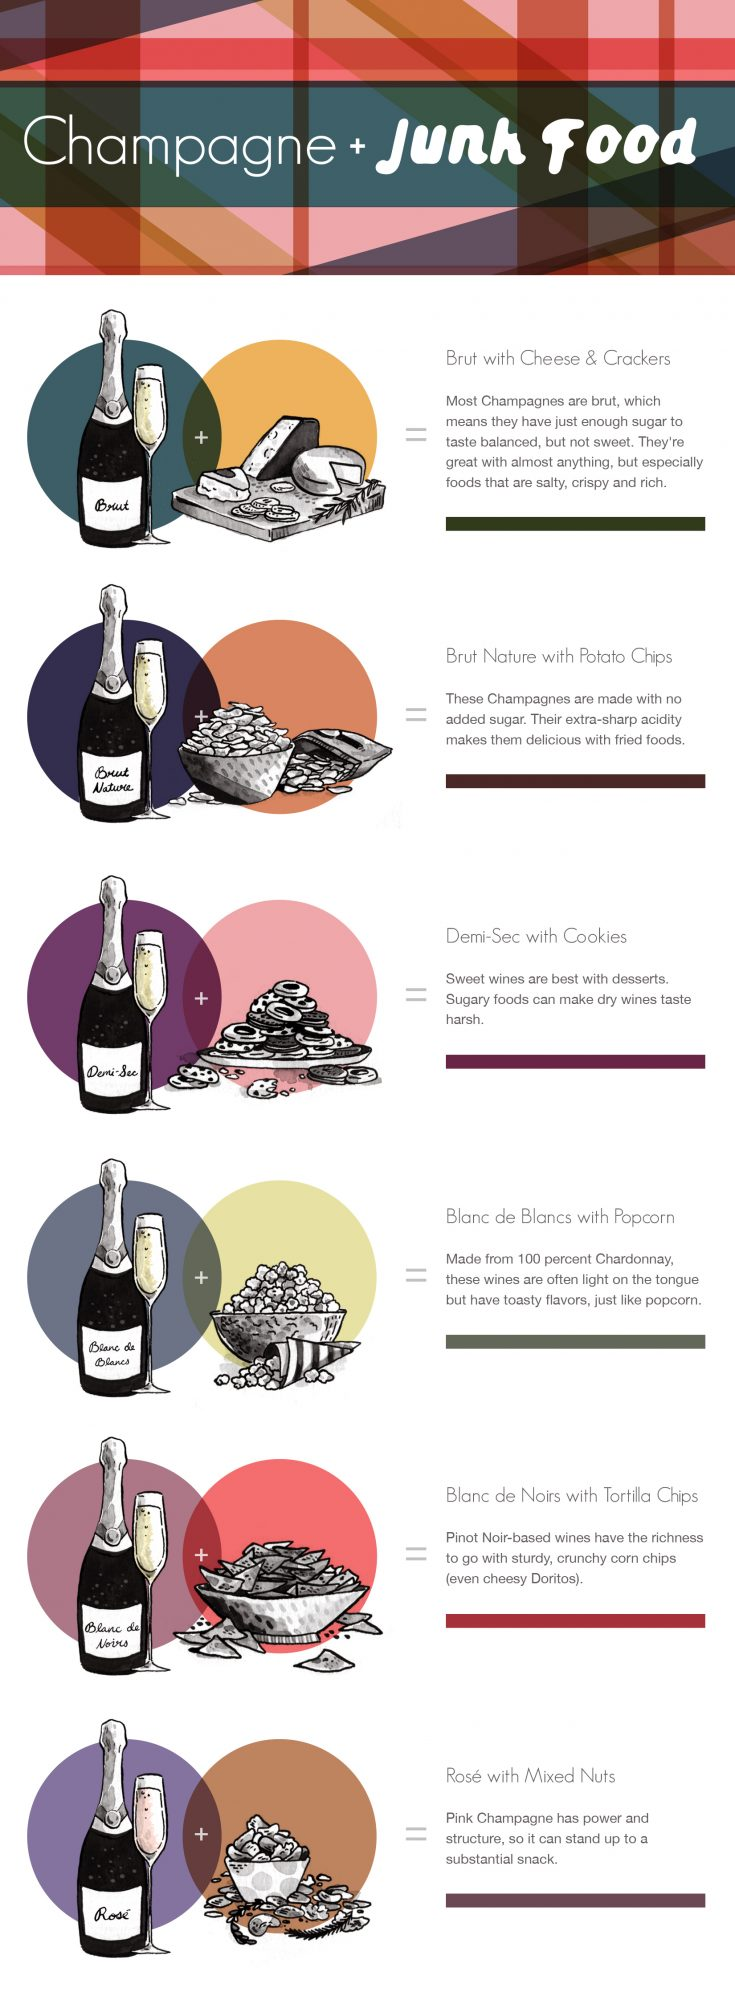 Champagne and Junk Food Pairings